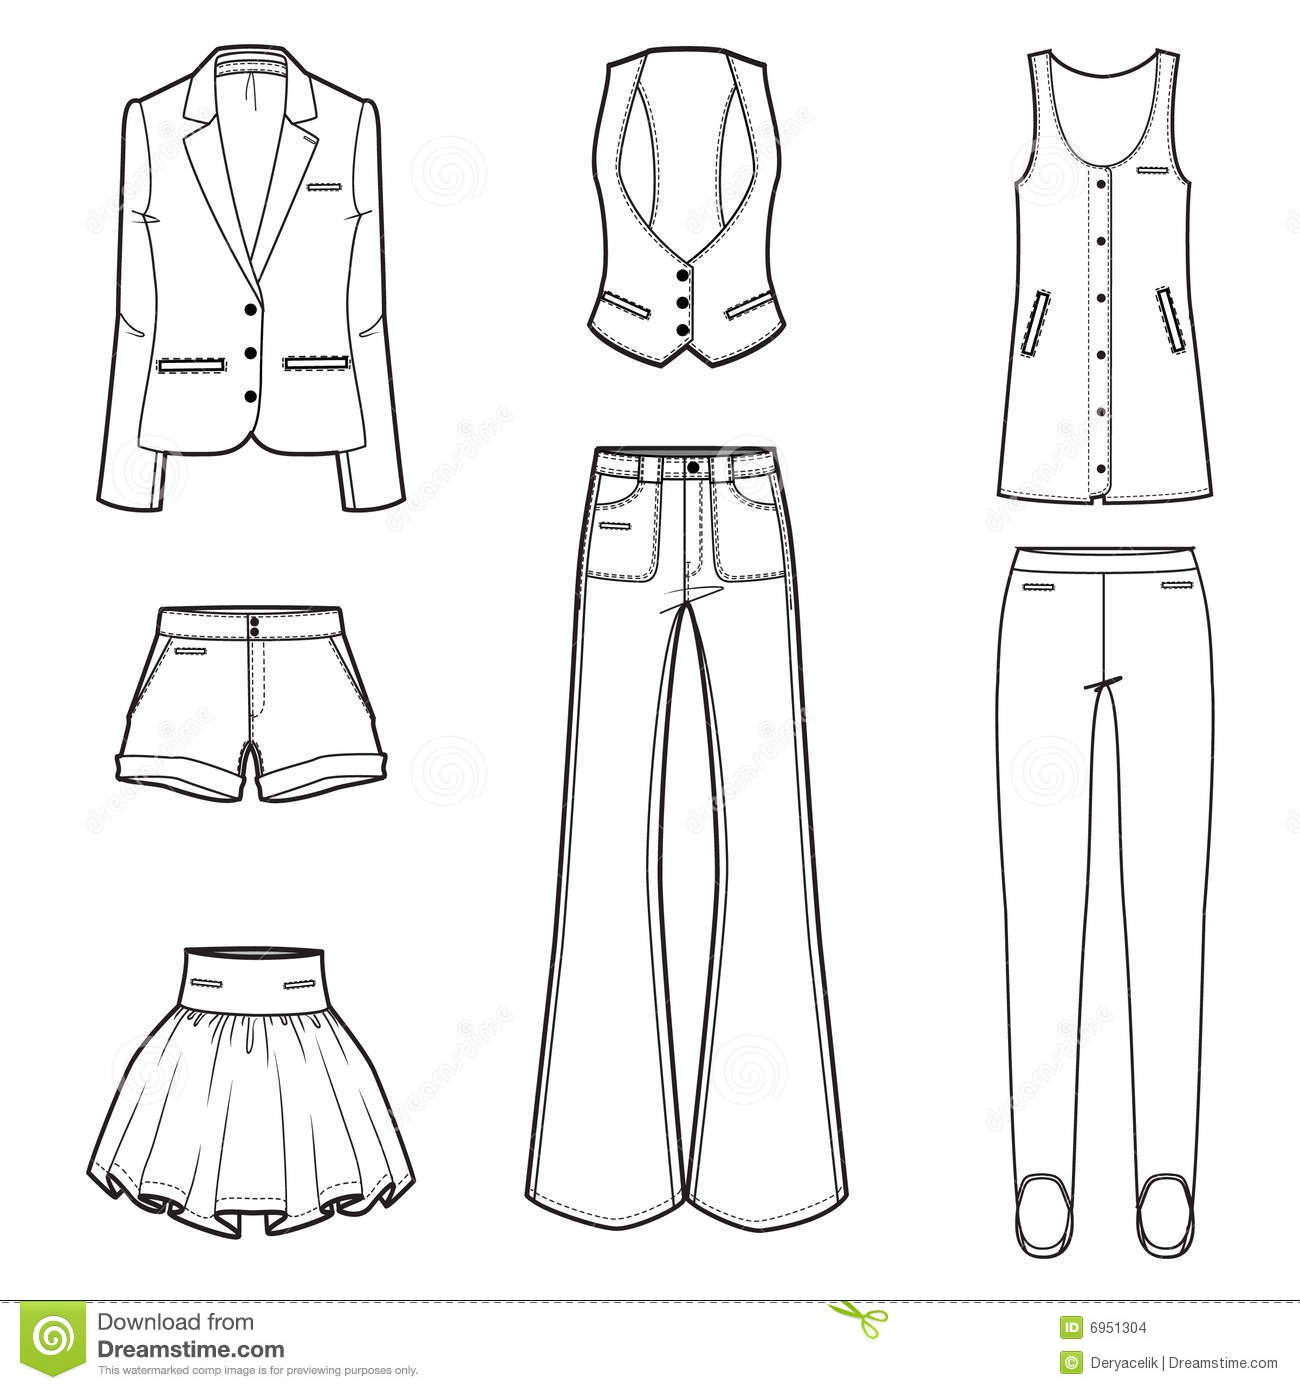 Free fashion doll patterns download 64